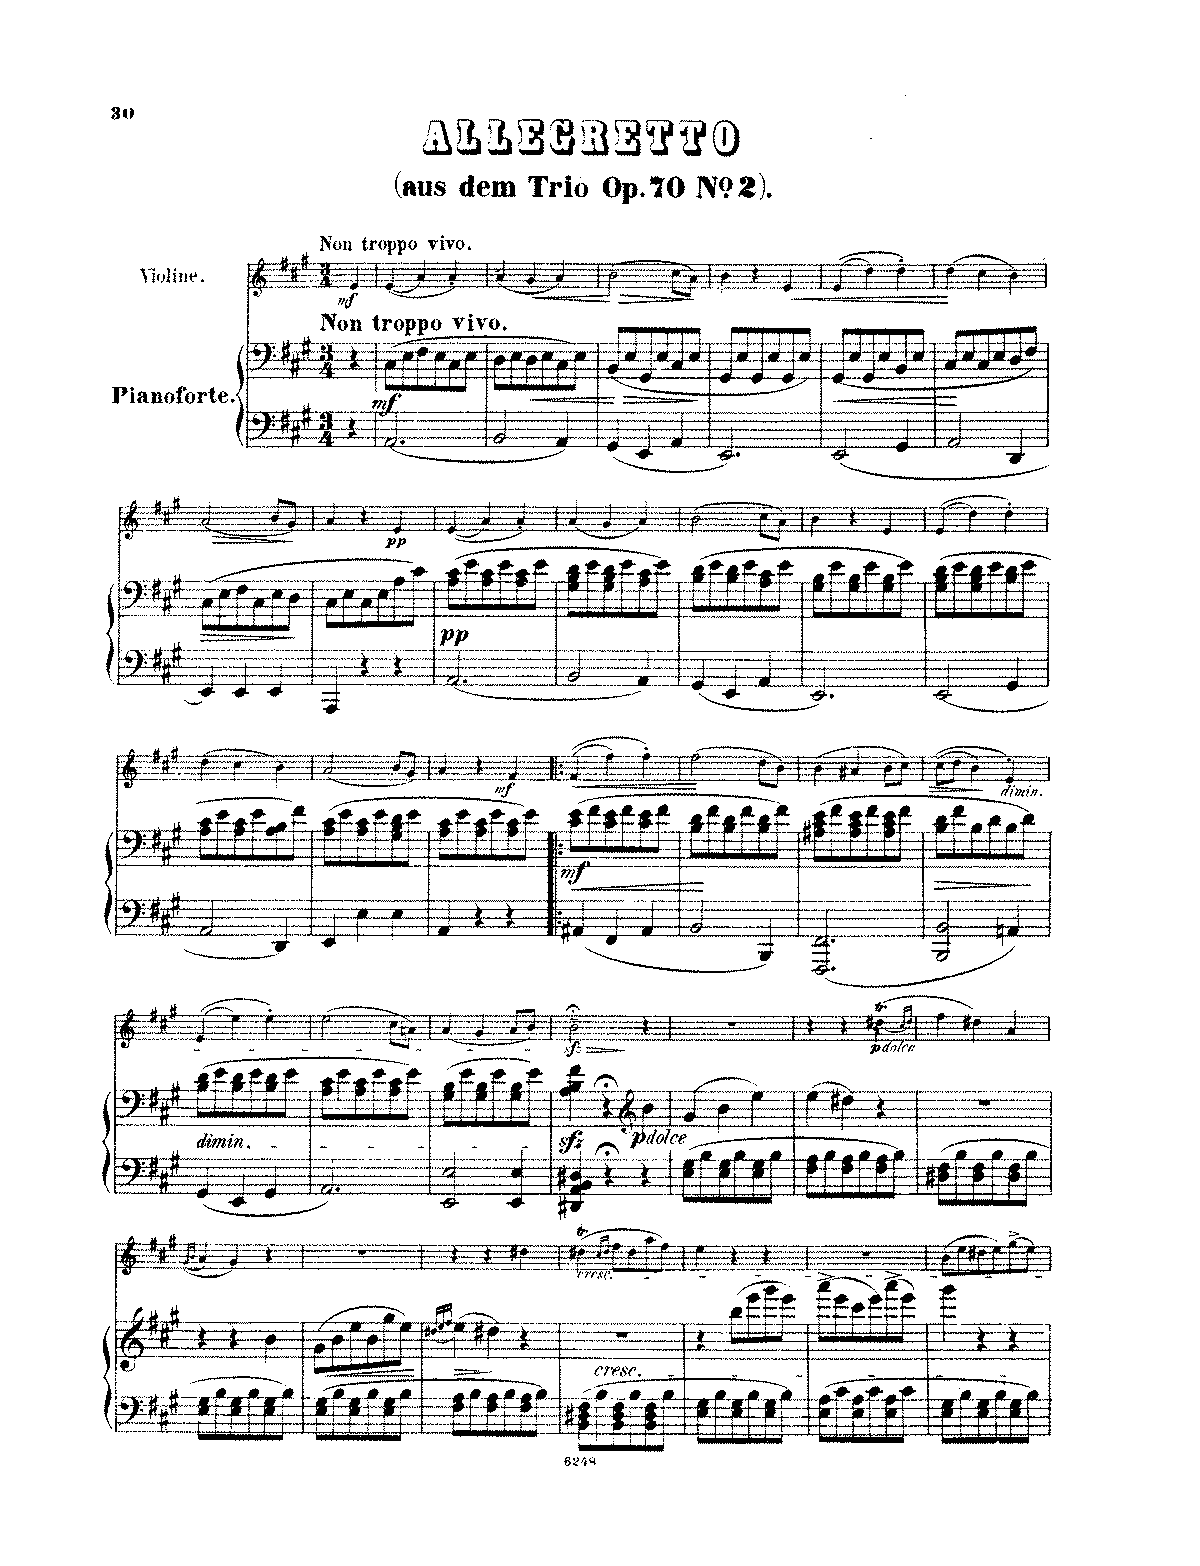 PMLP30738-Beeth Allegro no 9 of Her Kl St vol. 3 Beethoven score cmplt.pdf